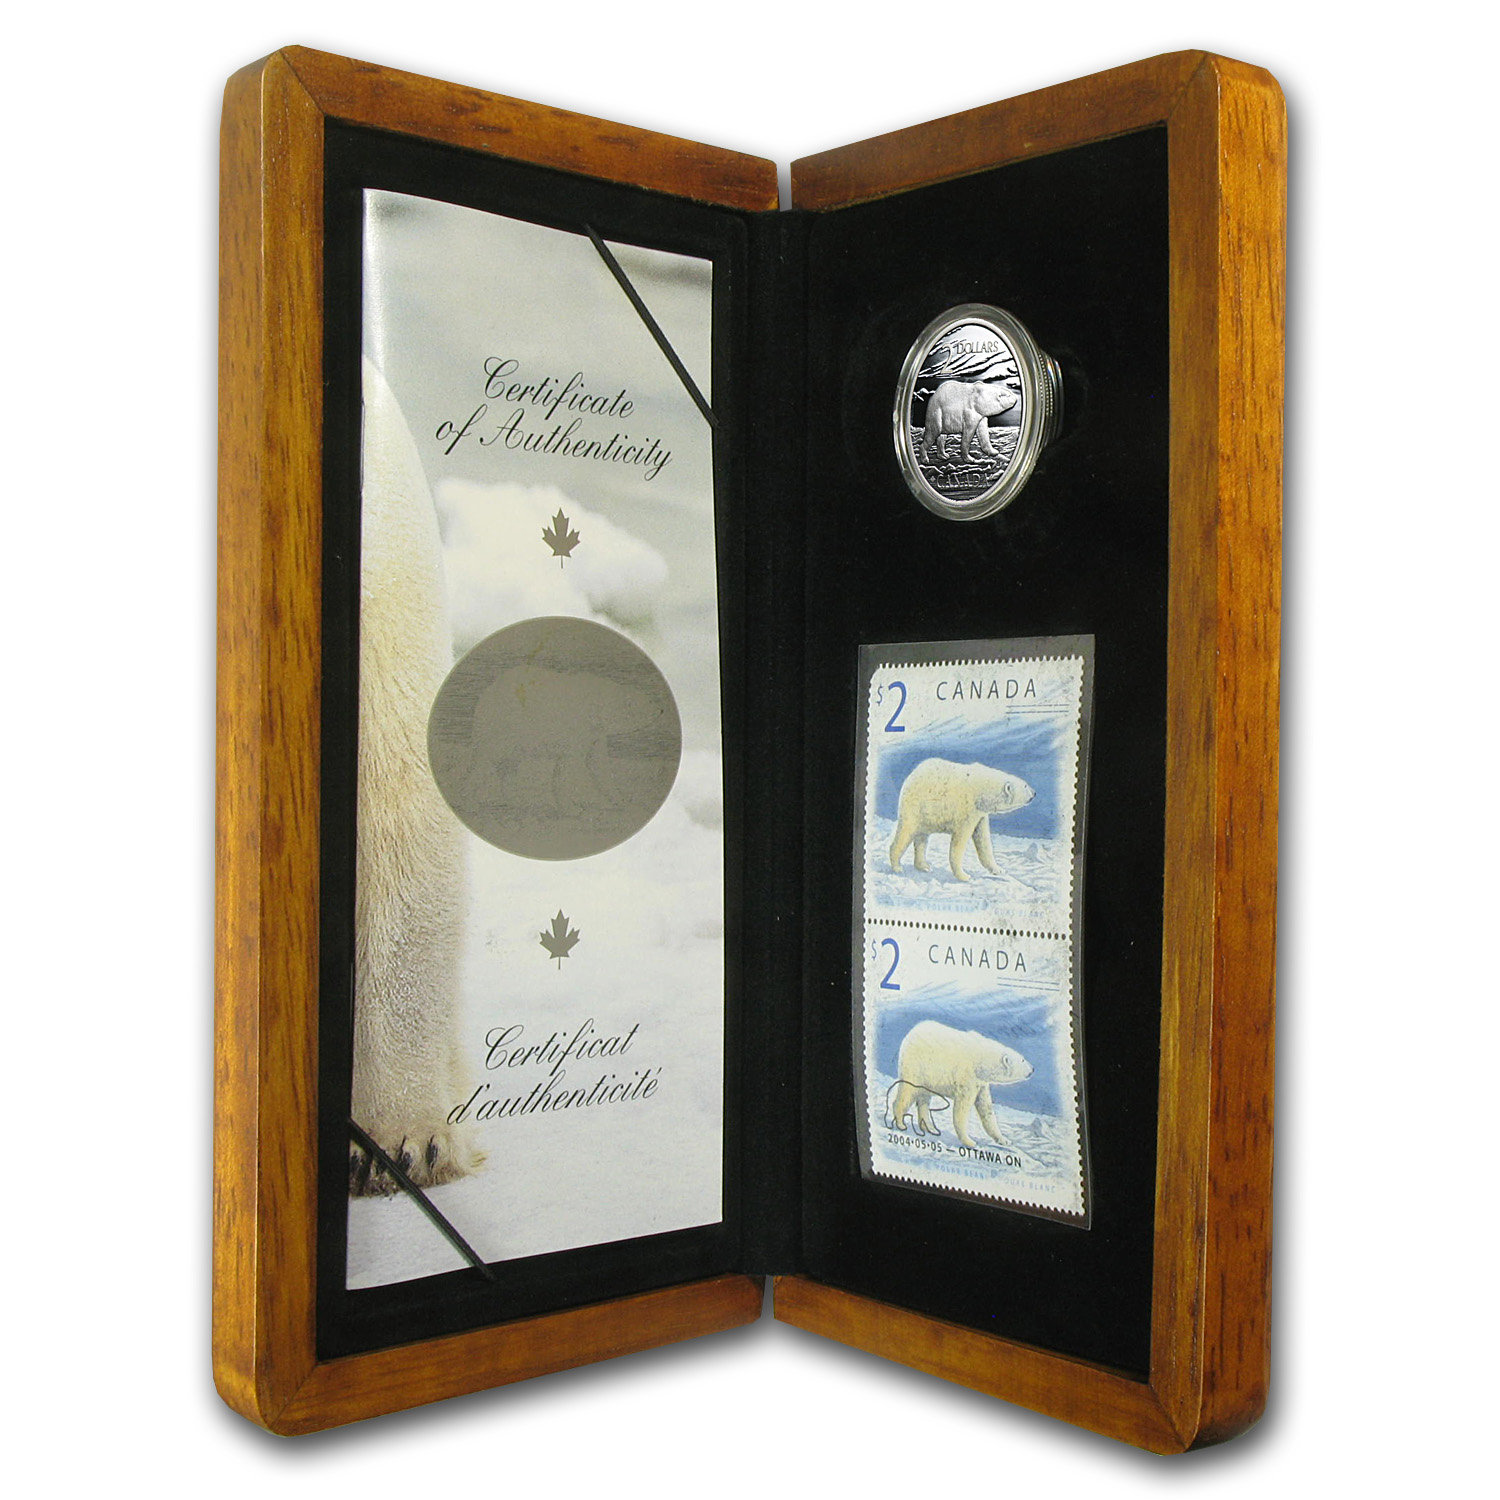 2004 1/4 oz Silver Canadian Polar Bear Coin and Stamp Set